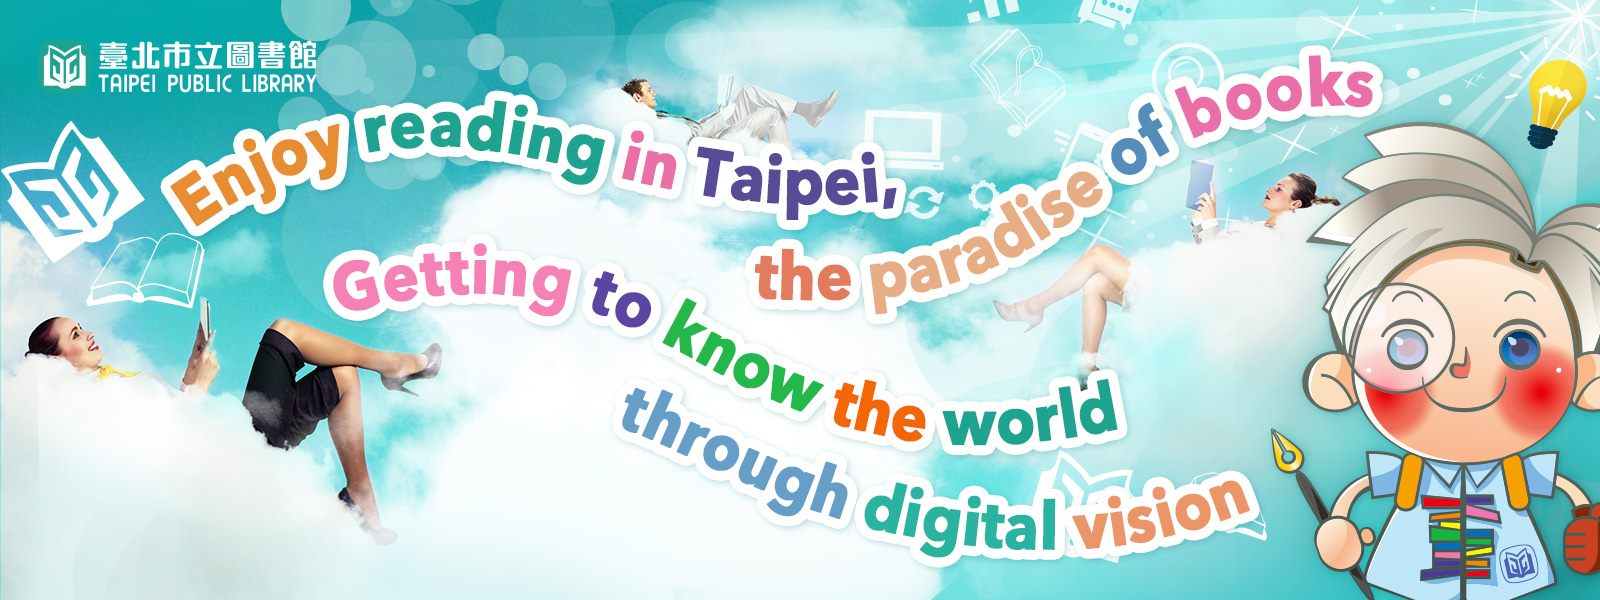 Enjoy reading in Taipei, the paradise of books Getting to know the world through digital vision